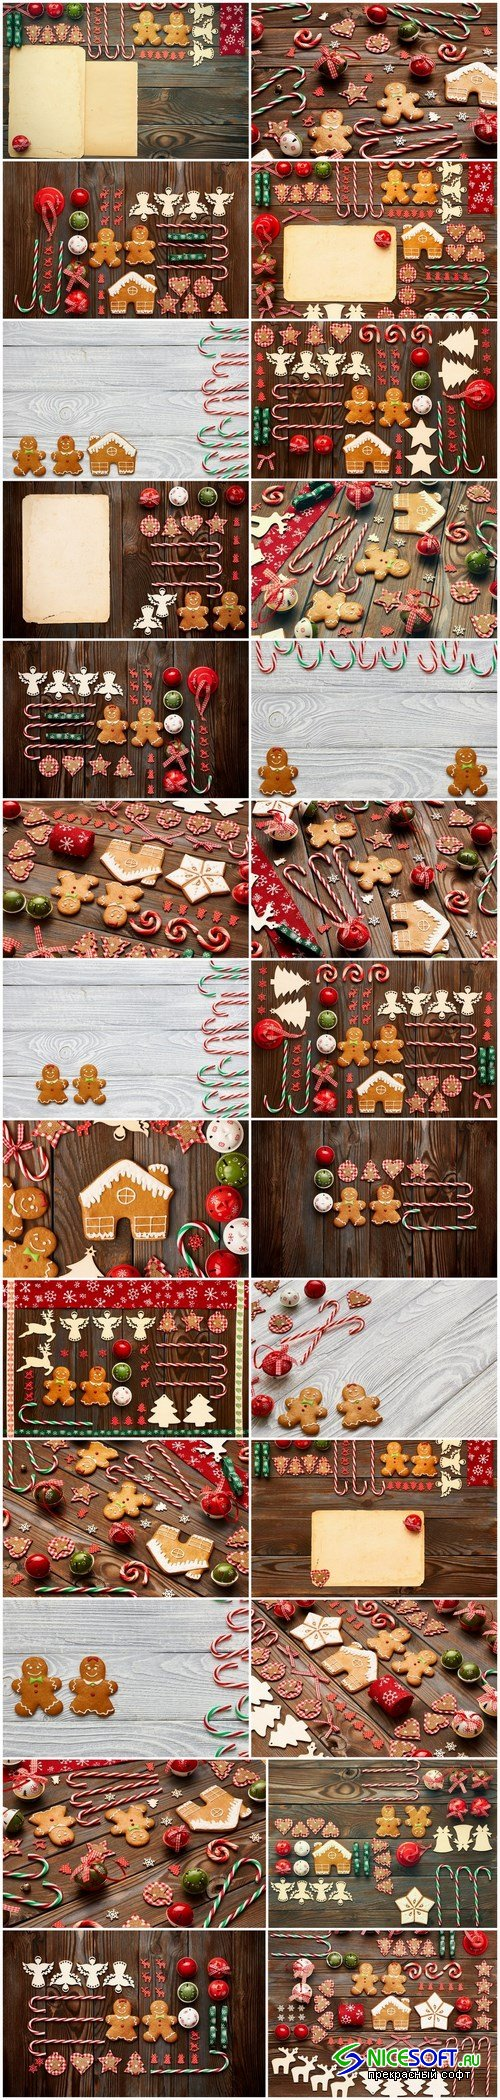 Christmas Sweets & Decorations 2 - 26xUHQ JPEG Photo Stock